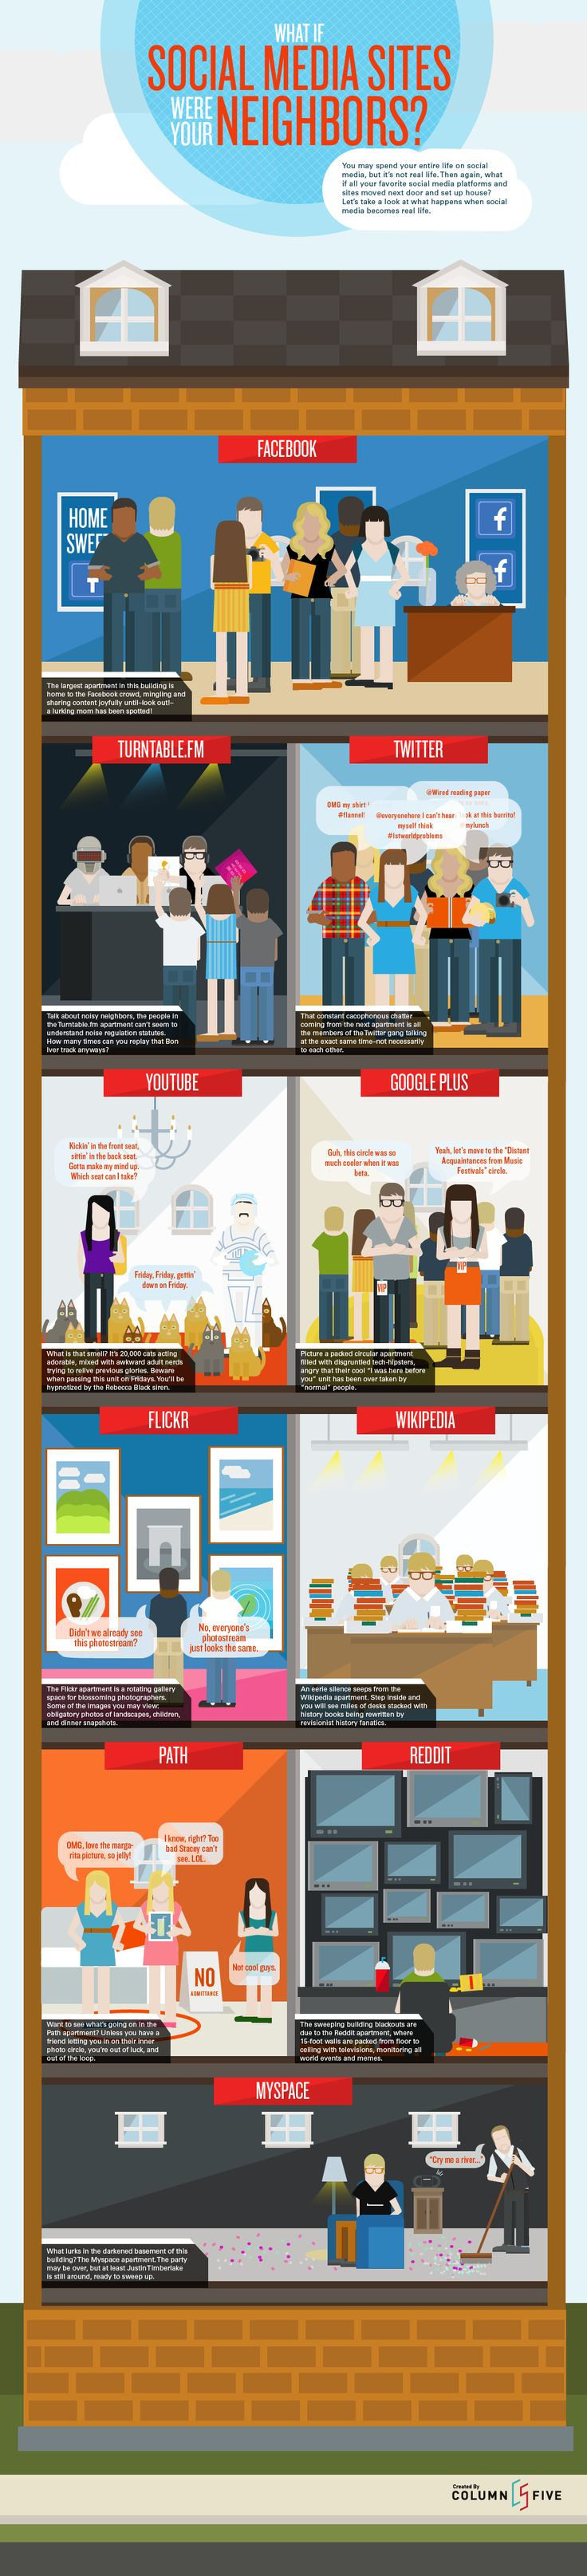 What if social media were your neighbors? [Infographic]